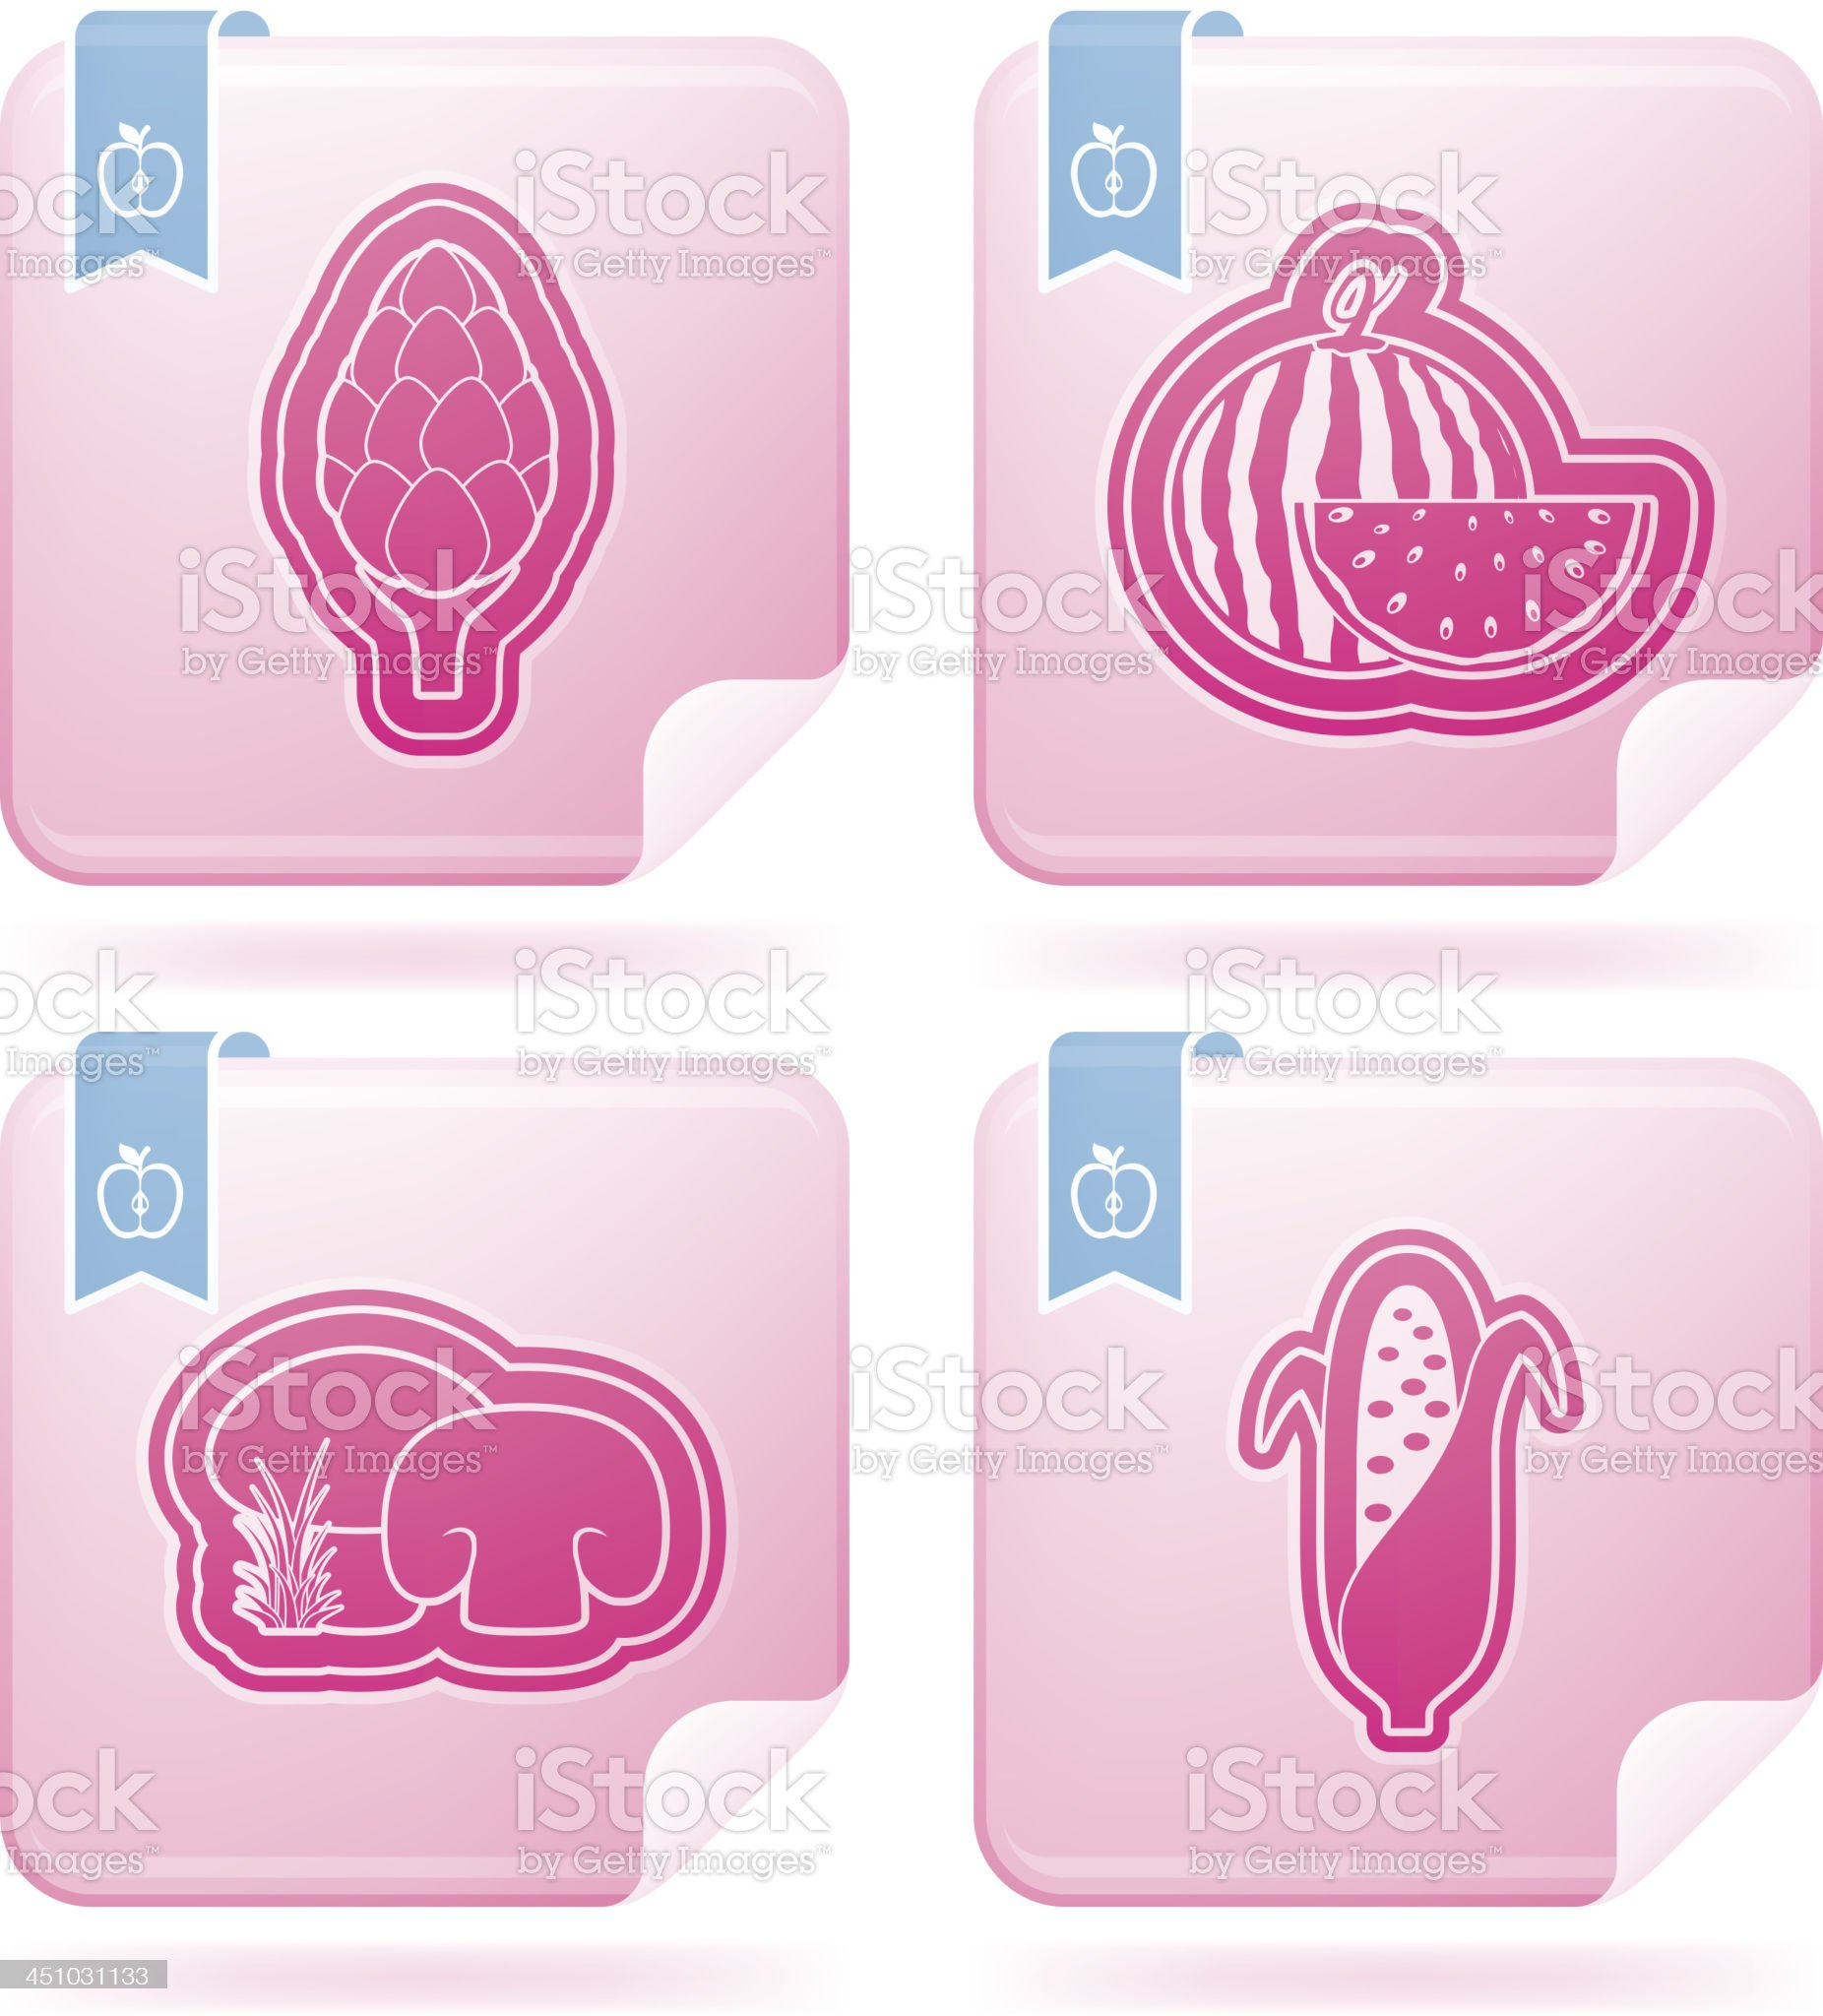 Vegetarian food royalty-free stock vector art